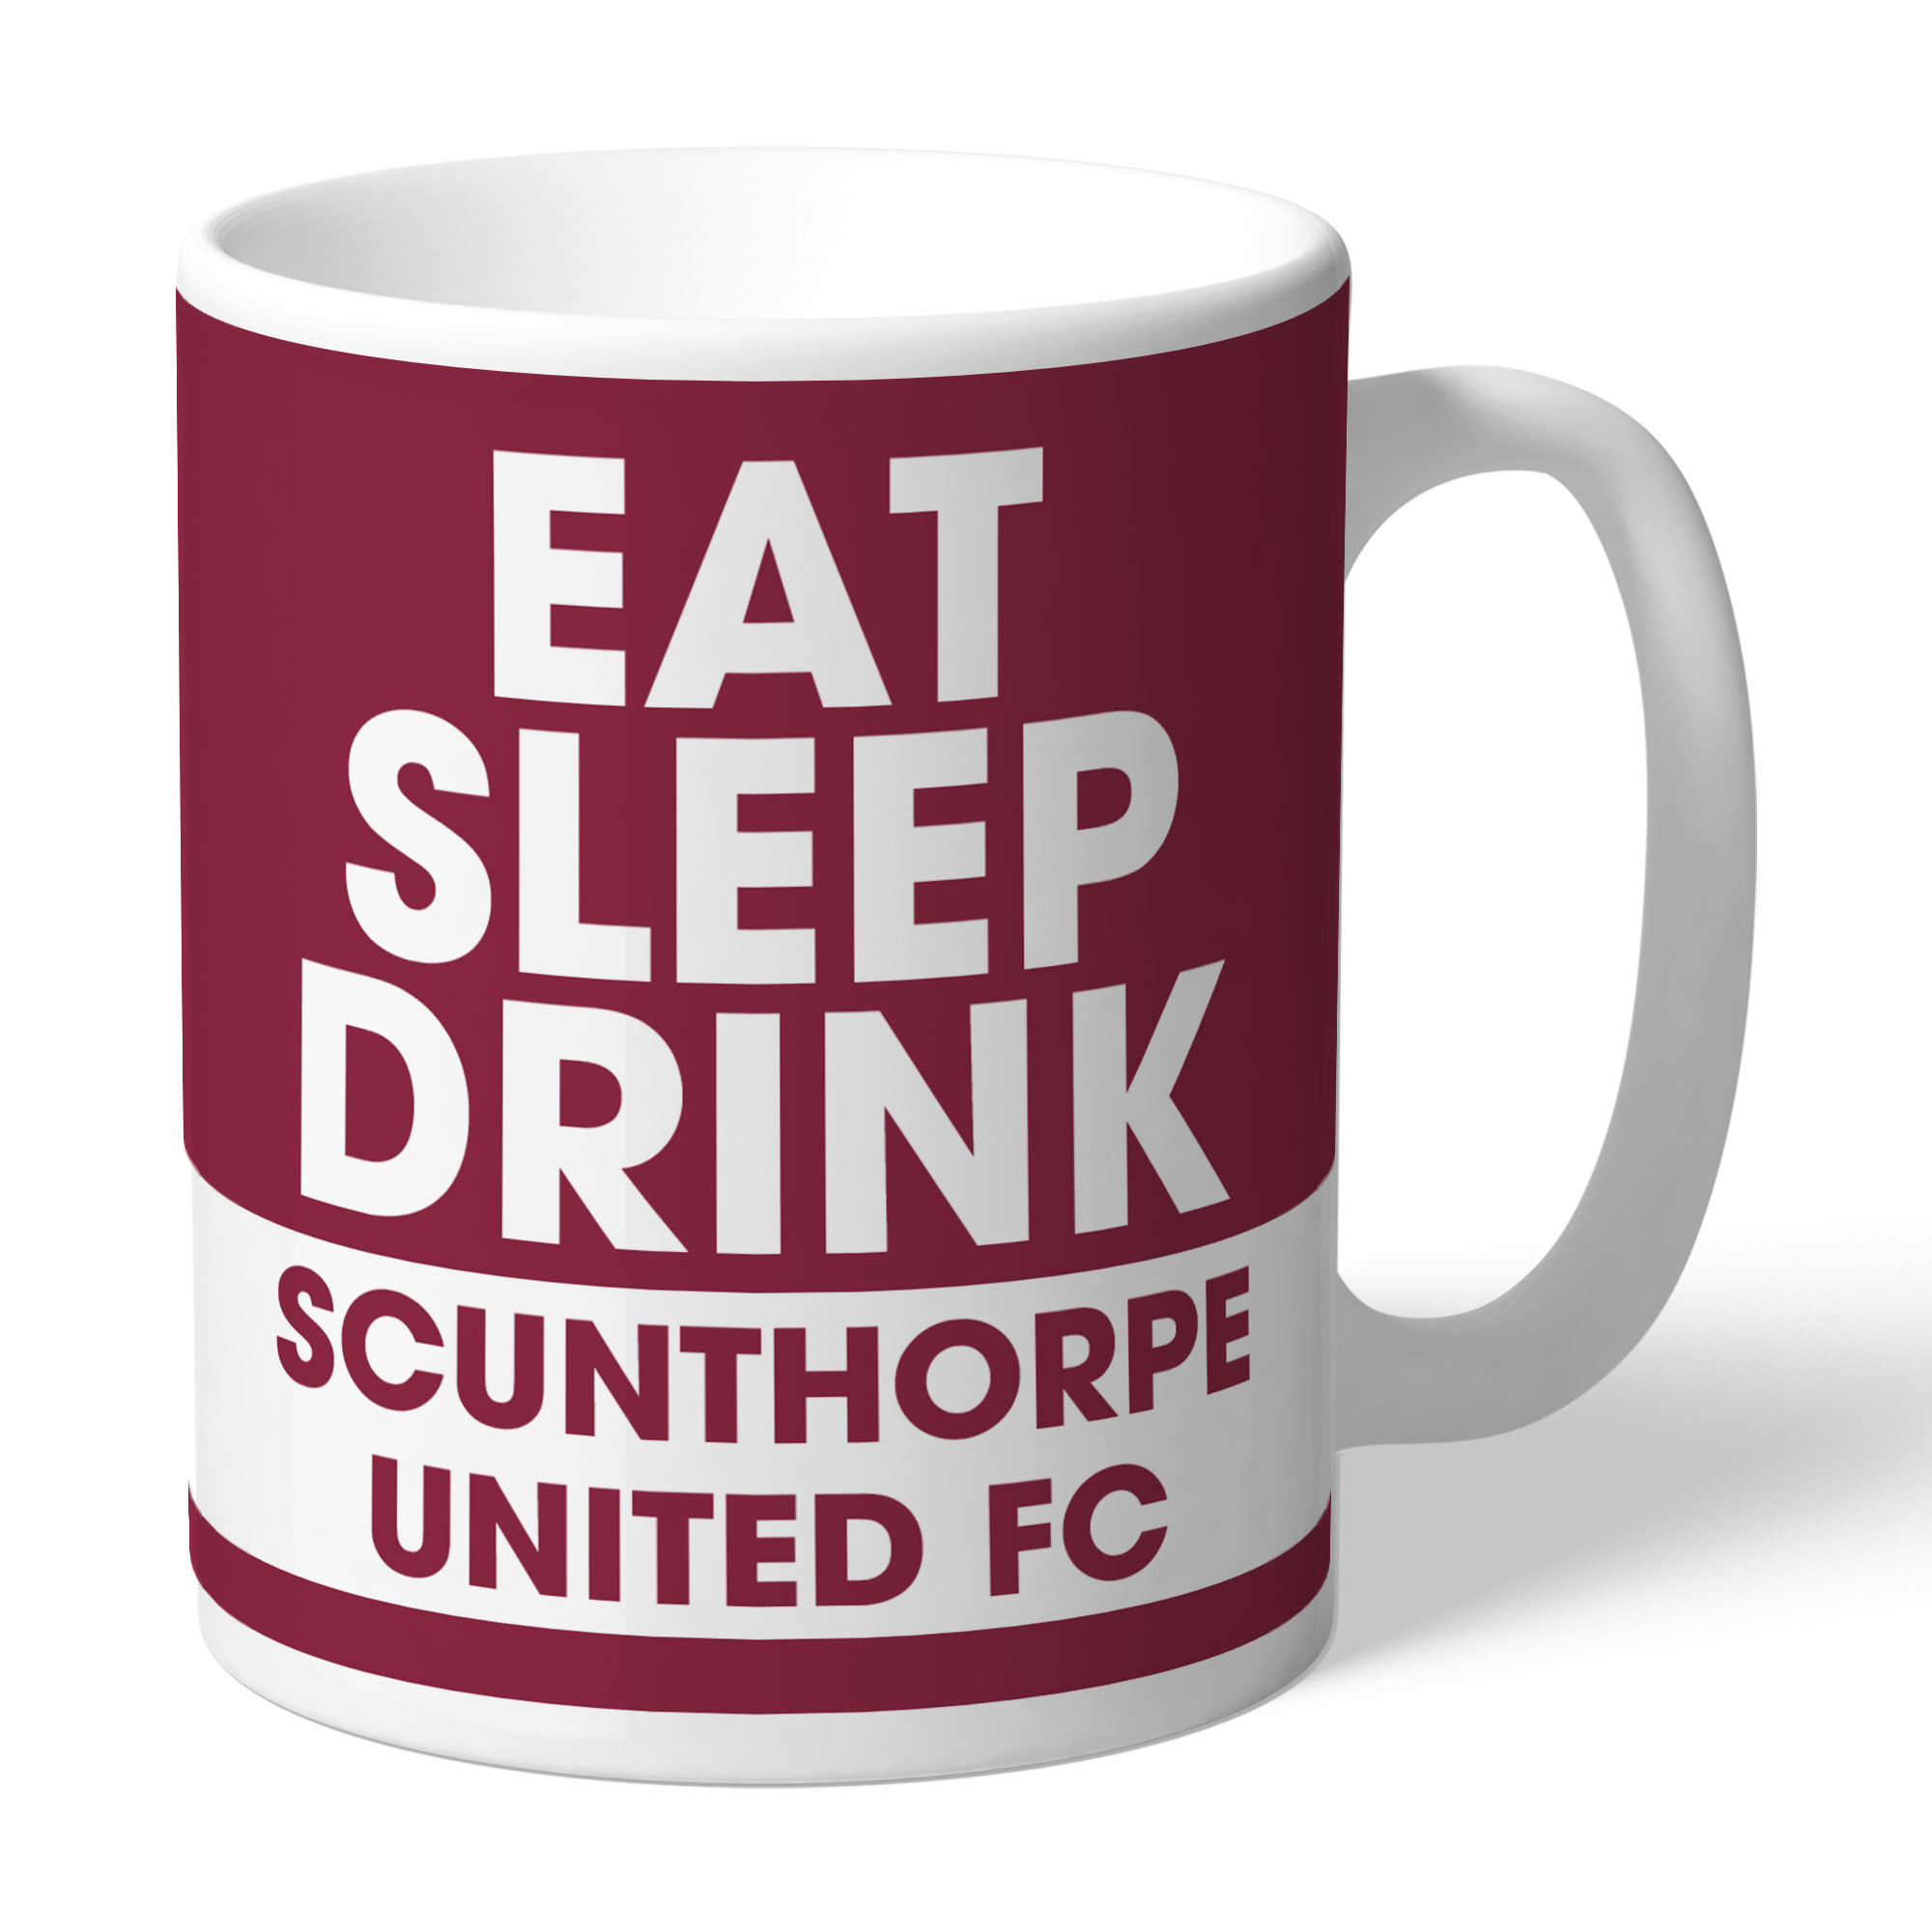 Scunthorpe United FC Eat Sleep Drink Mug